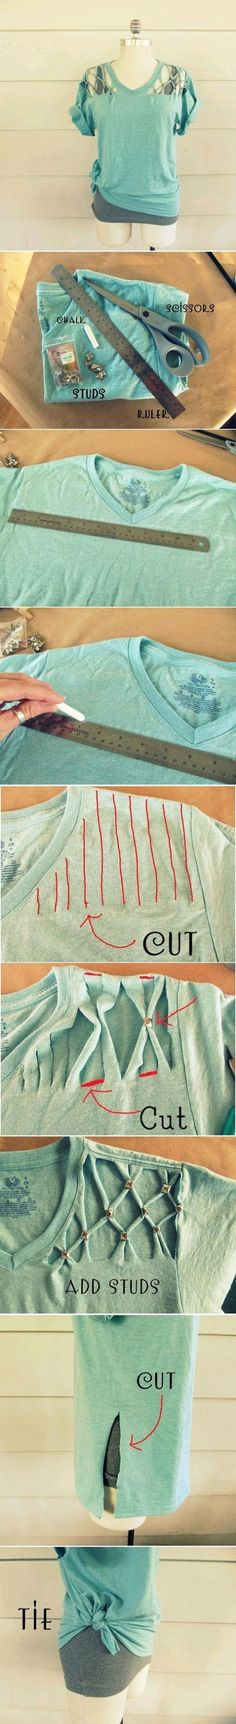 So cute- T shirt craft with detail